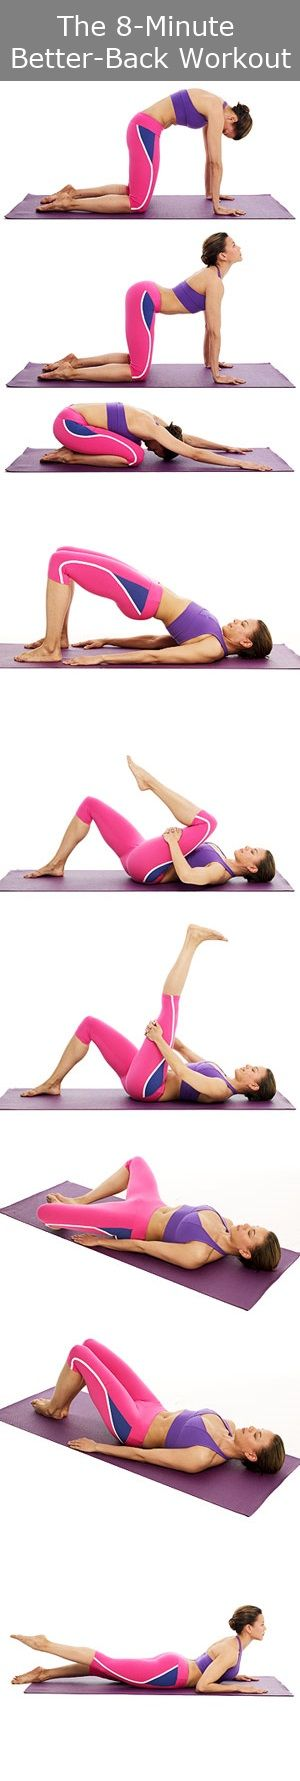 Hold each pose for 15 - 30 sec. each